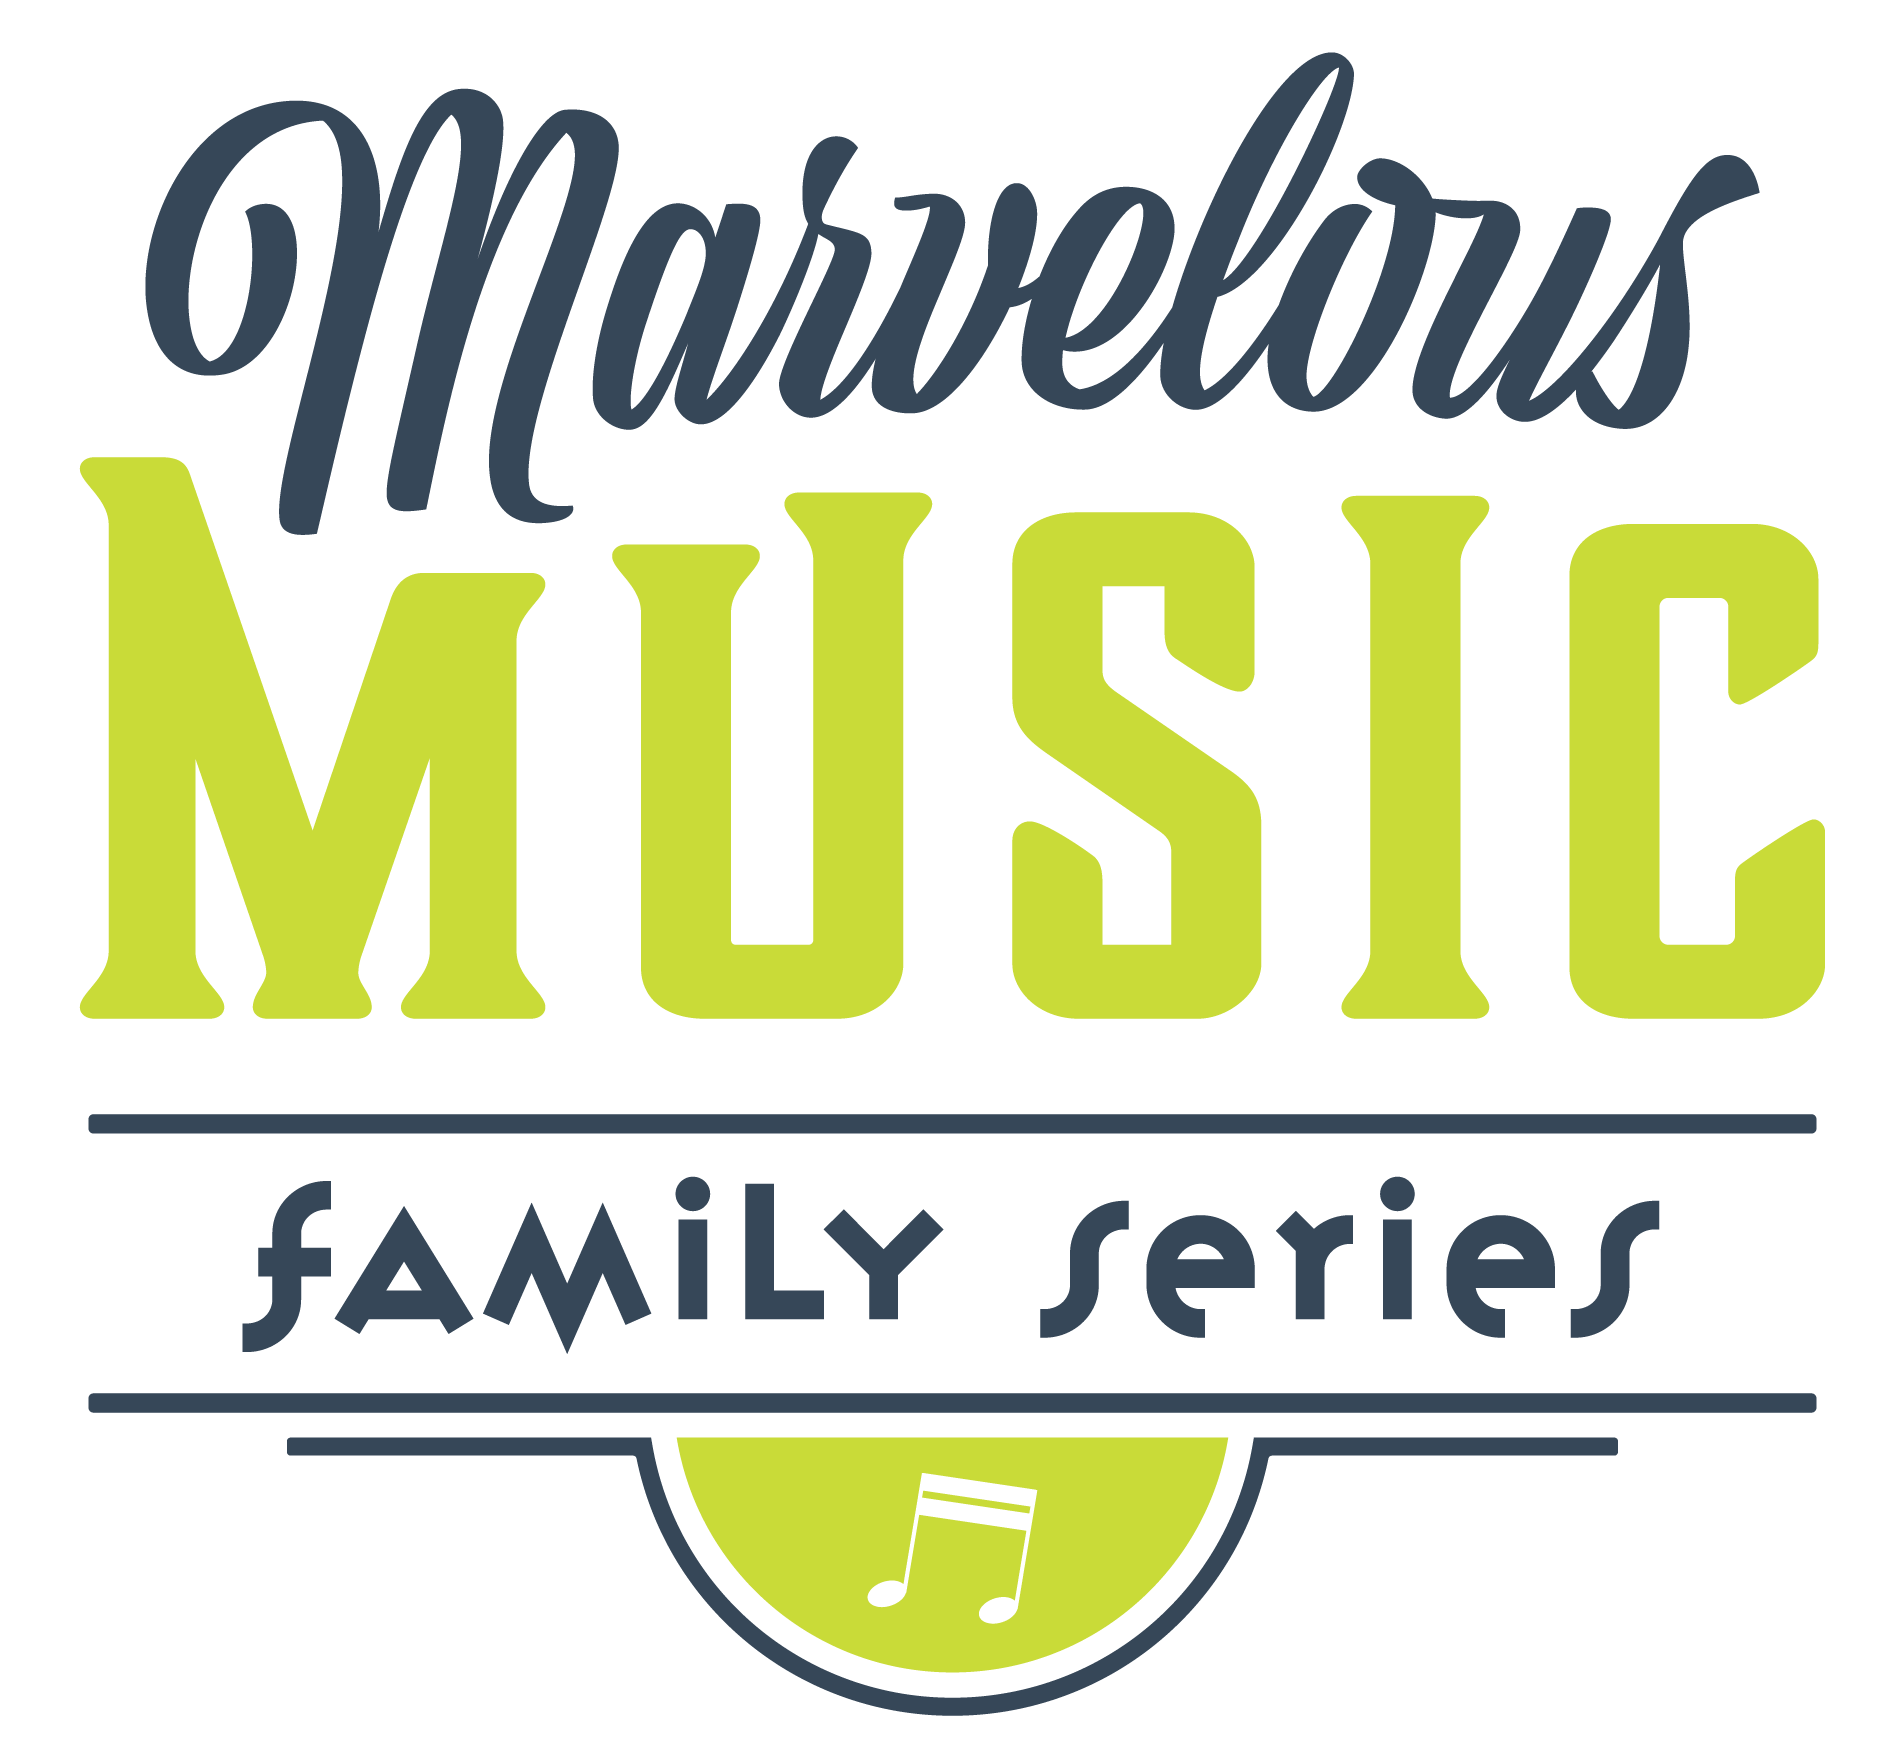 marvelous Music Family logo